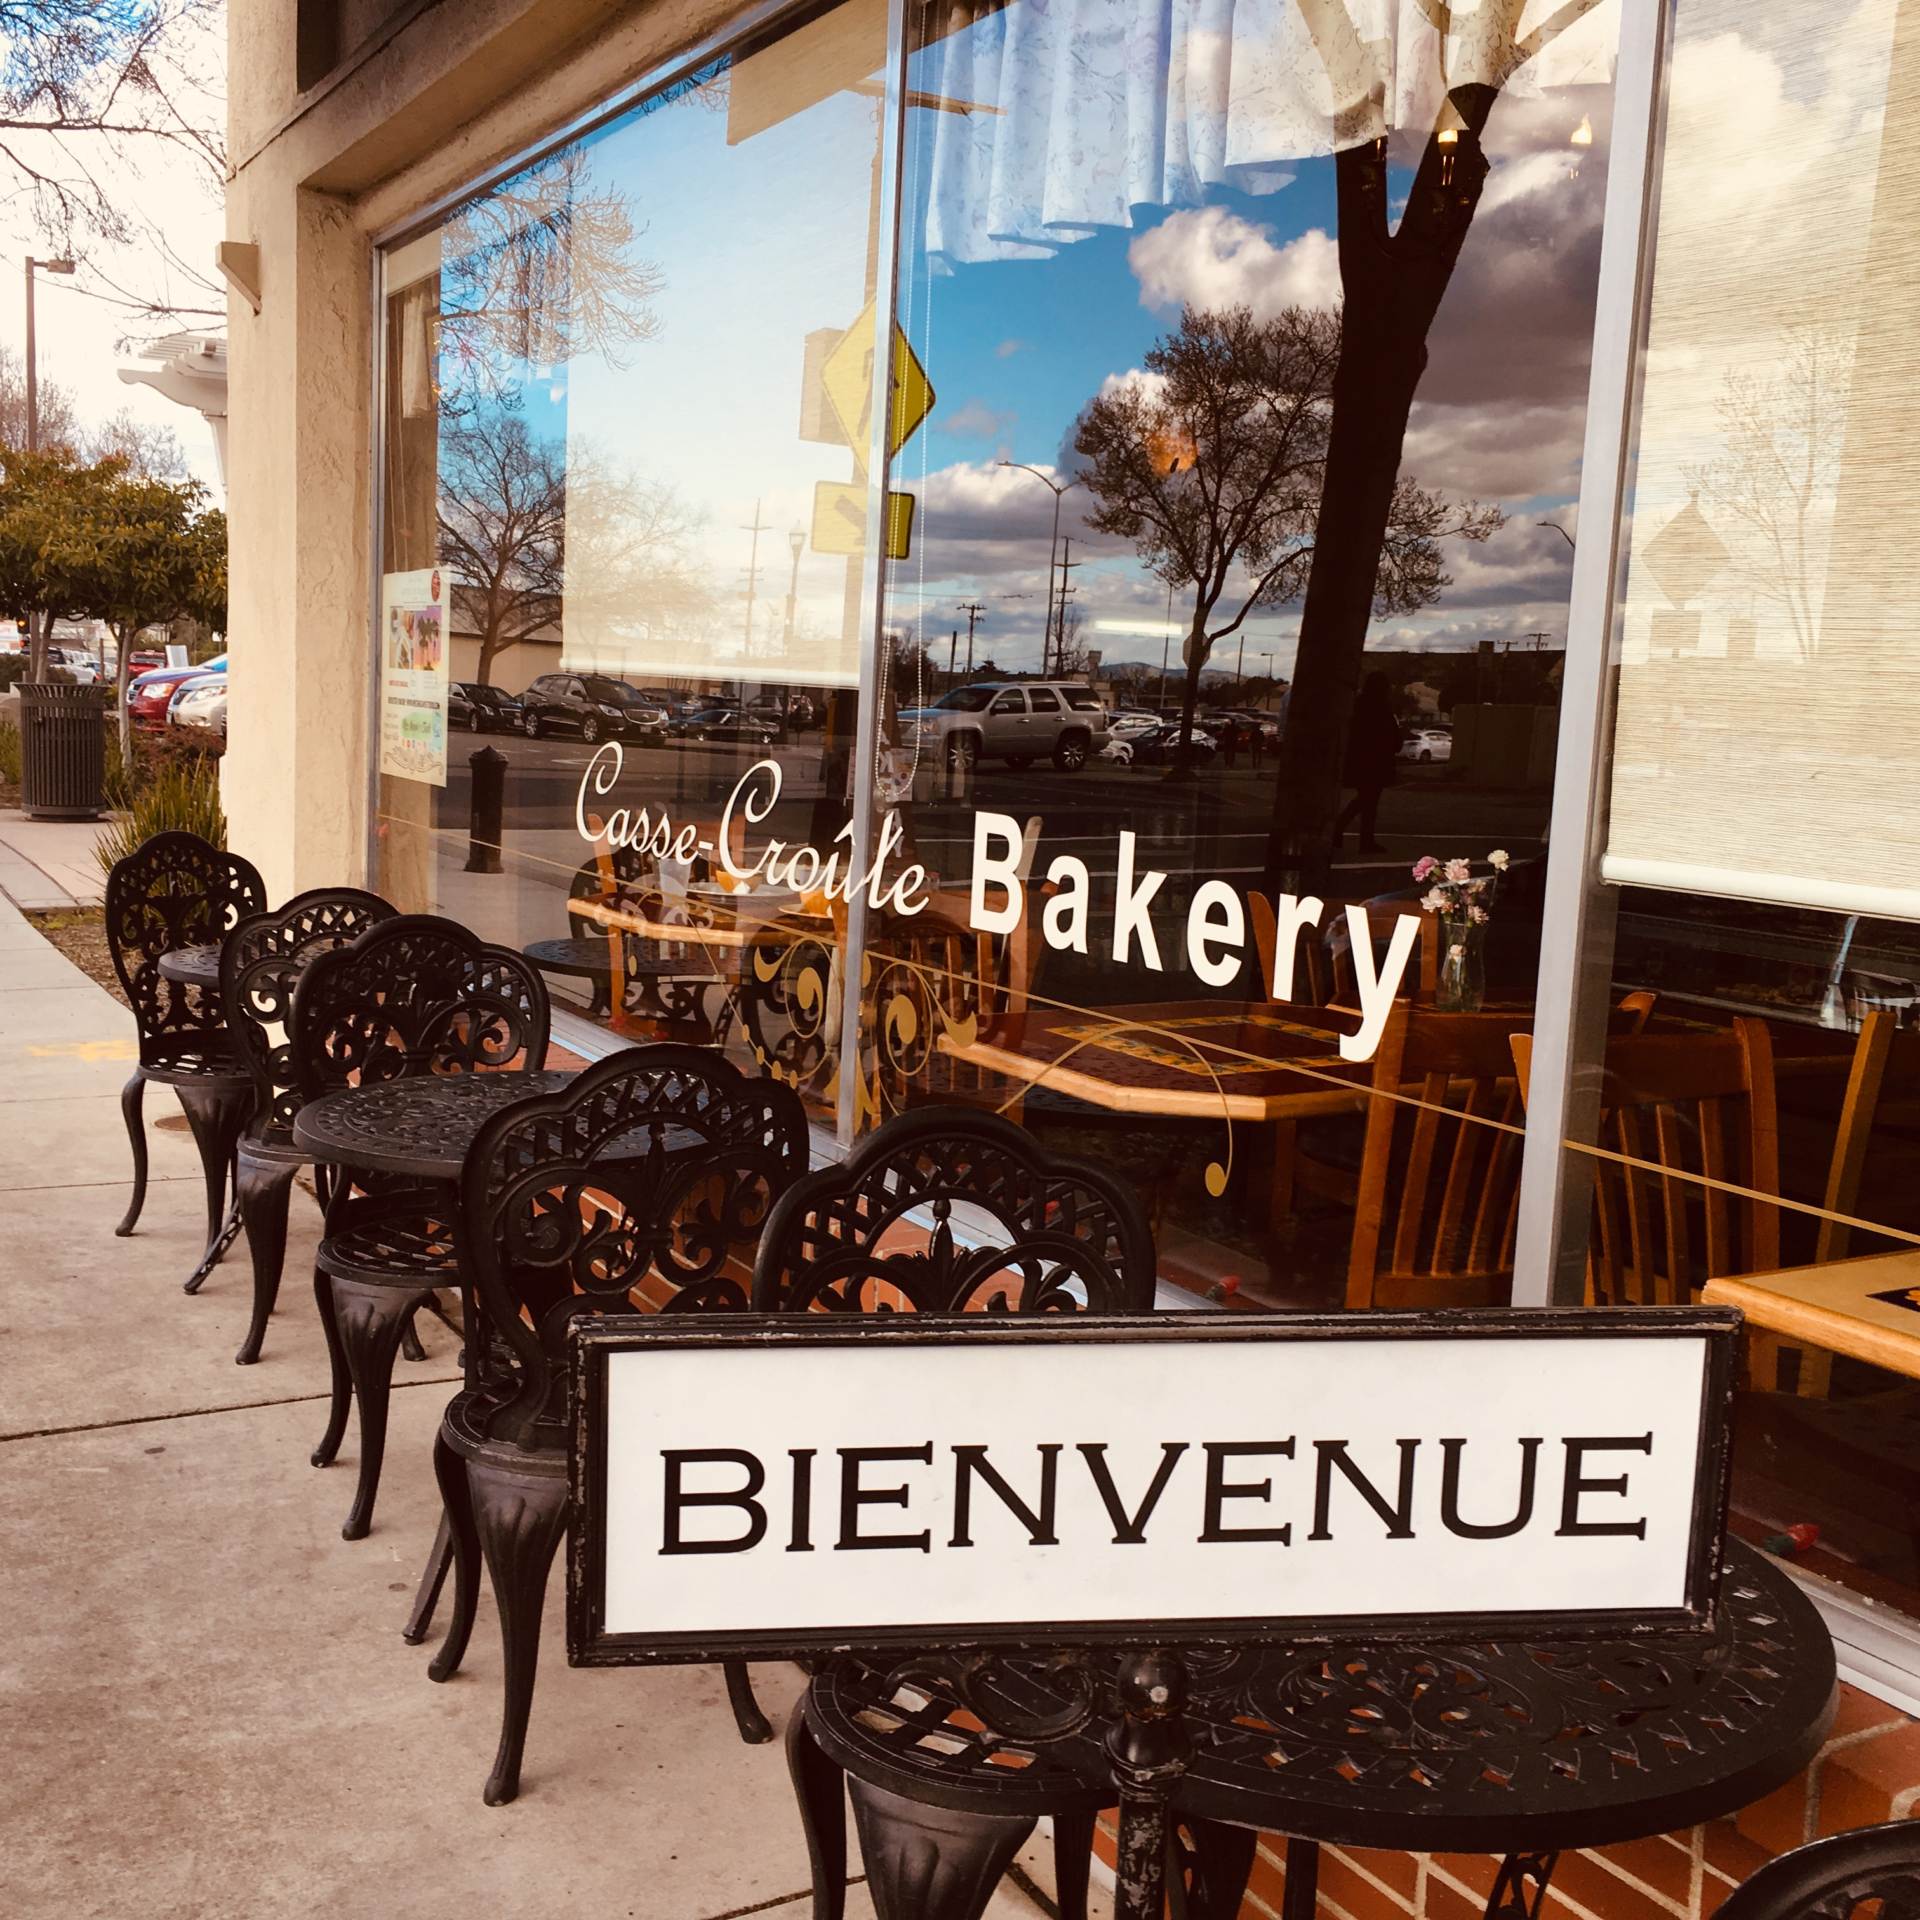 Casse-Croute Bakery